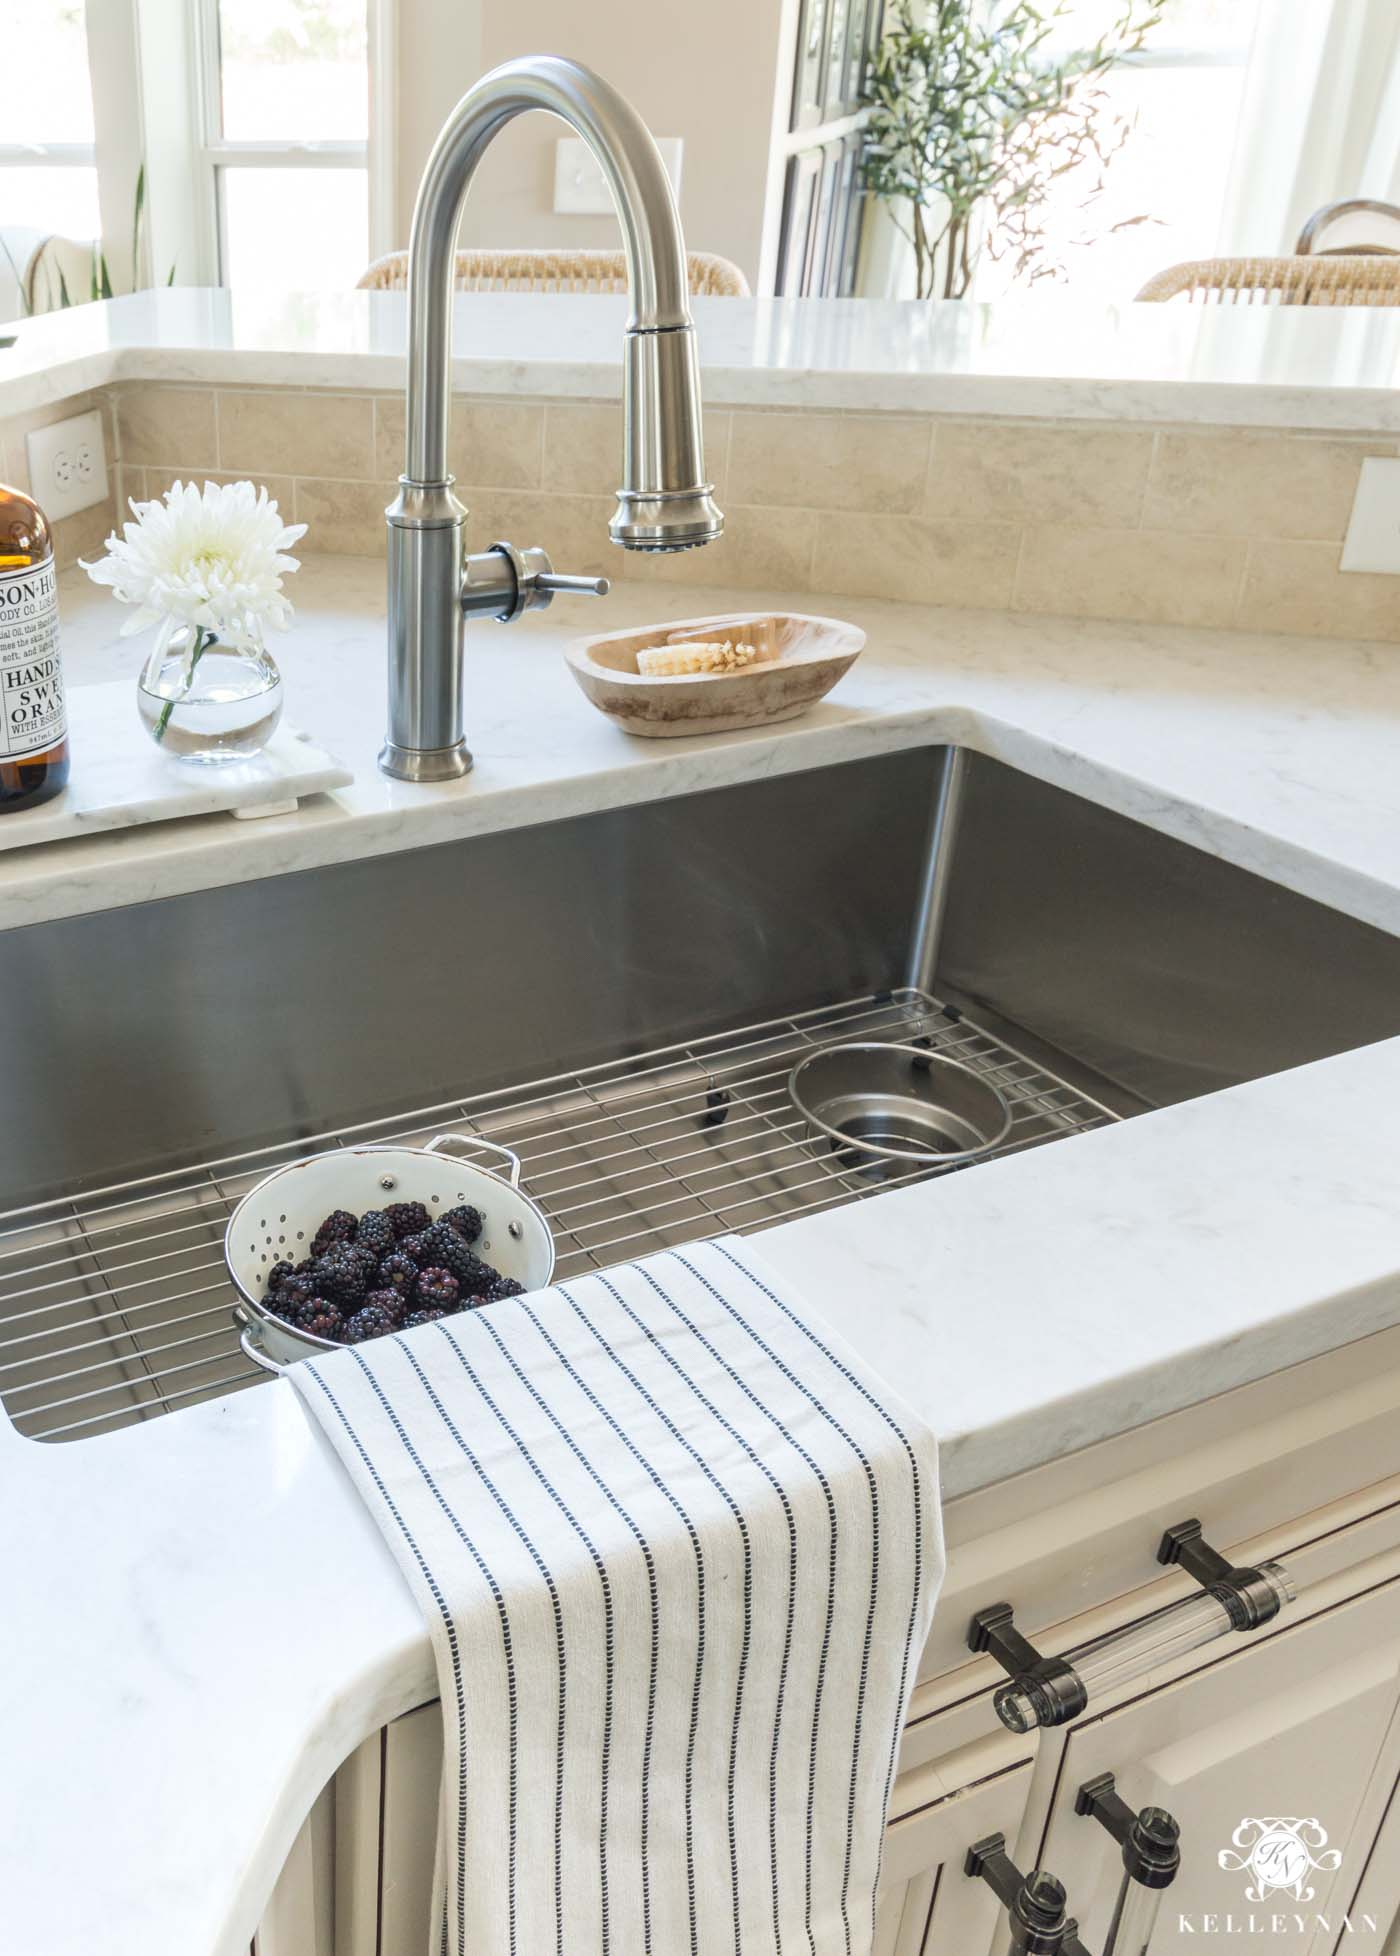 Beautiful under-mount single basin blanco sink with side drain